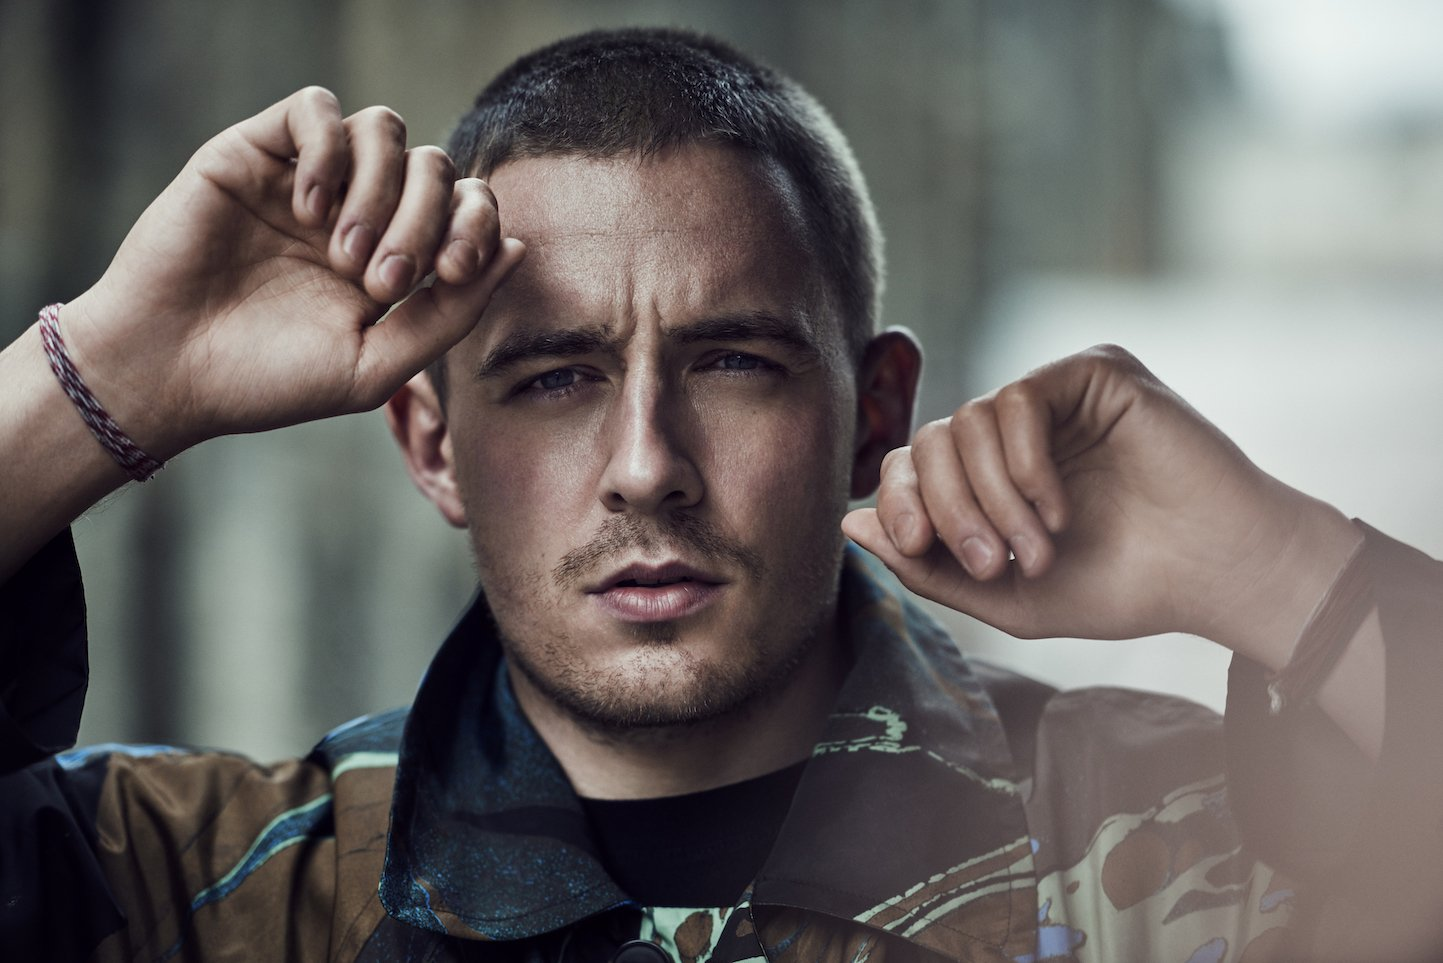 DERMOT KENNEDY announces a SECOND ALEXANDRA PALACE SHOW in London